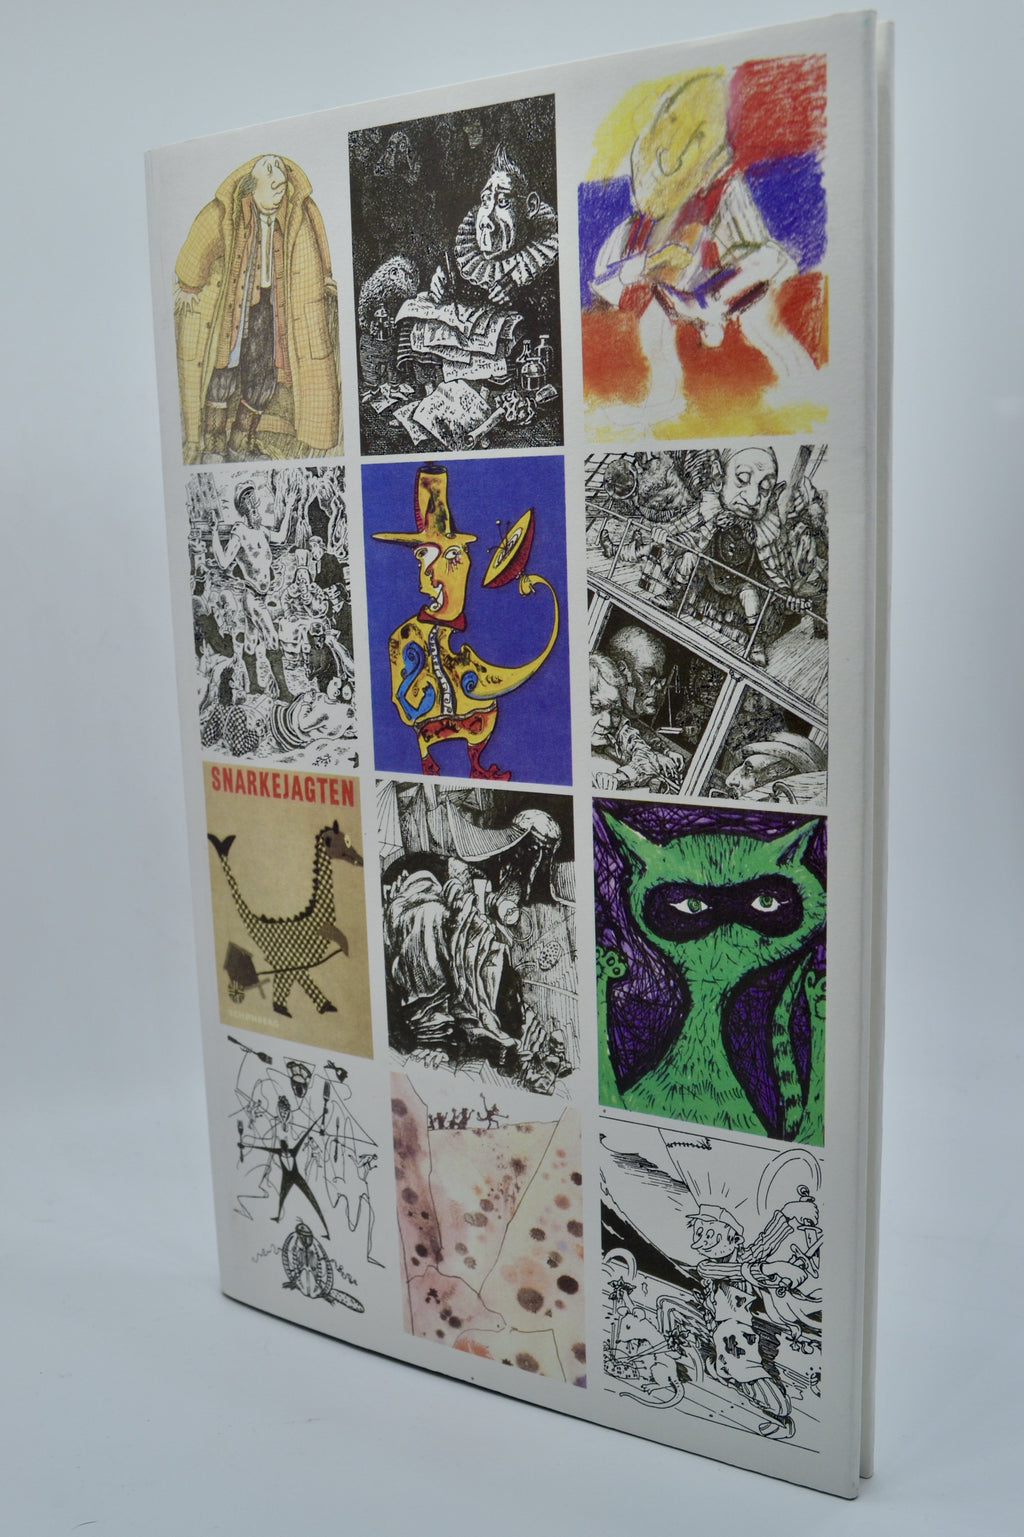 Selwyn Goodacre First Edition / Limited Edition | All the Snarks | SIGNED | Cheltenham Rare Books